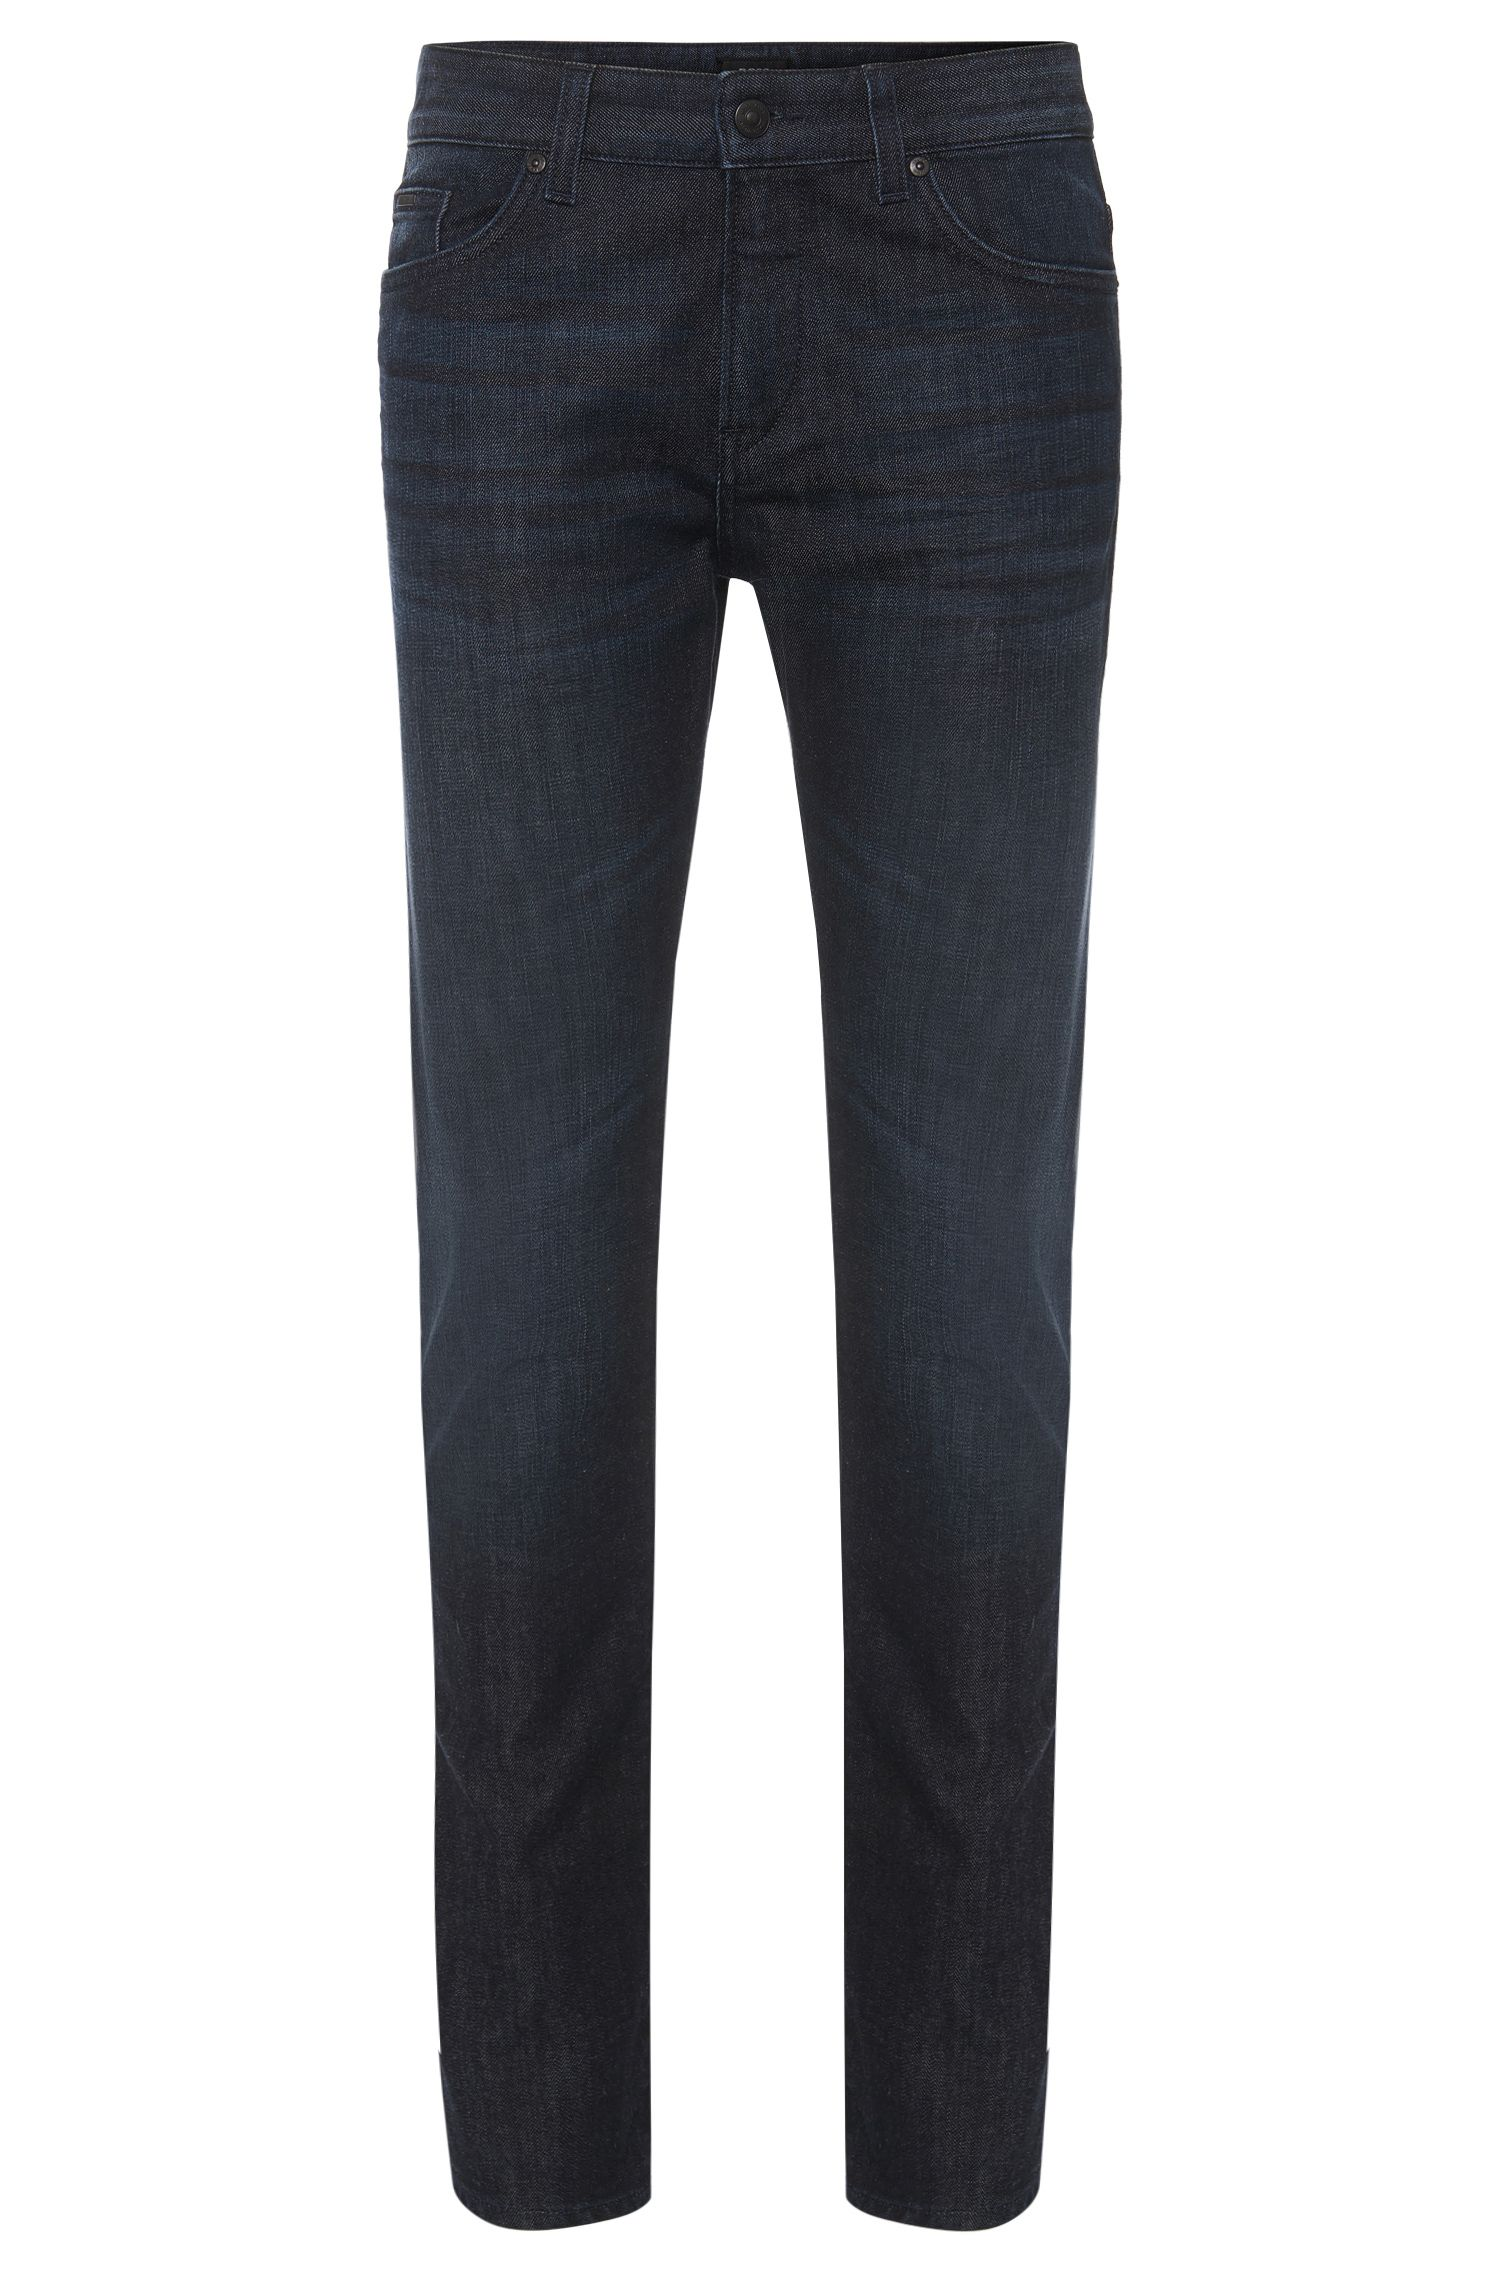 Slim-Fit Jeans aus Stretch-Baumwolle im Five-Pocket-Stil: 'Delaware3-1'